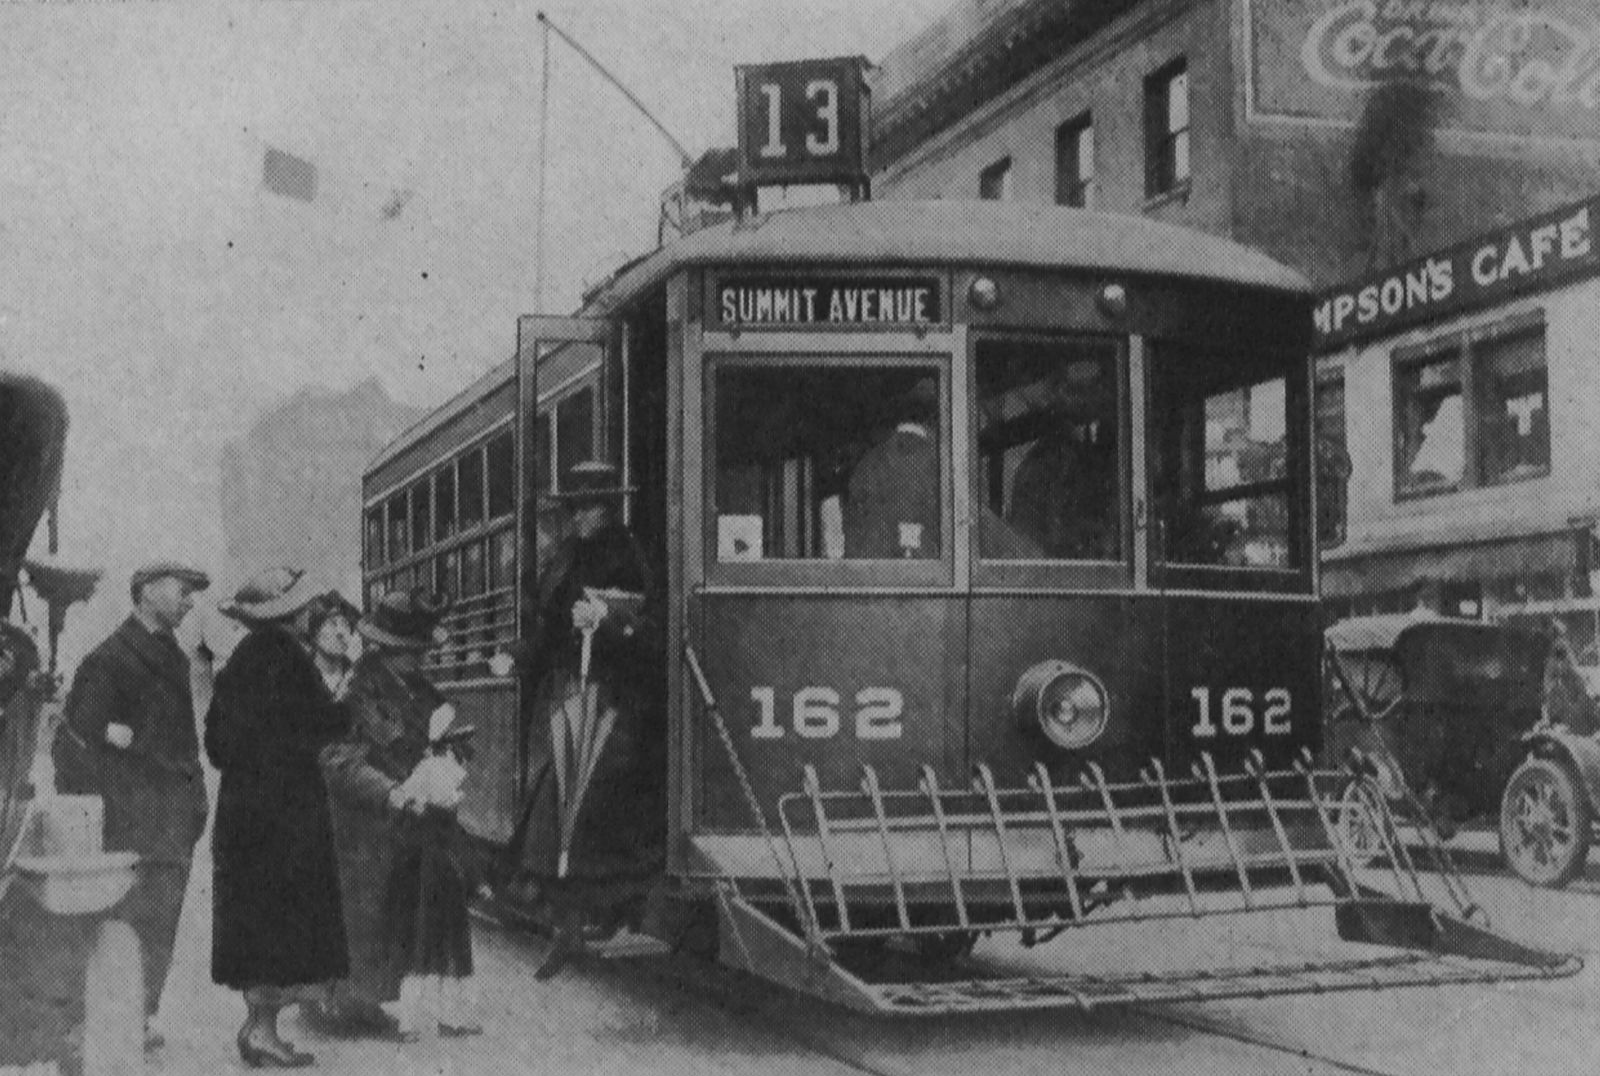 Westinghouse Electric And Manufacturing Company's Safety Car, Number 162, In Seattle, Washington